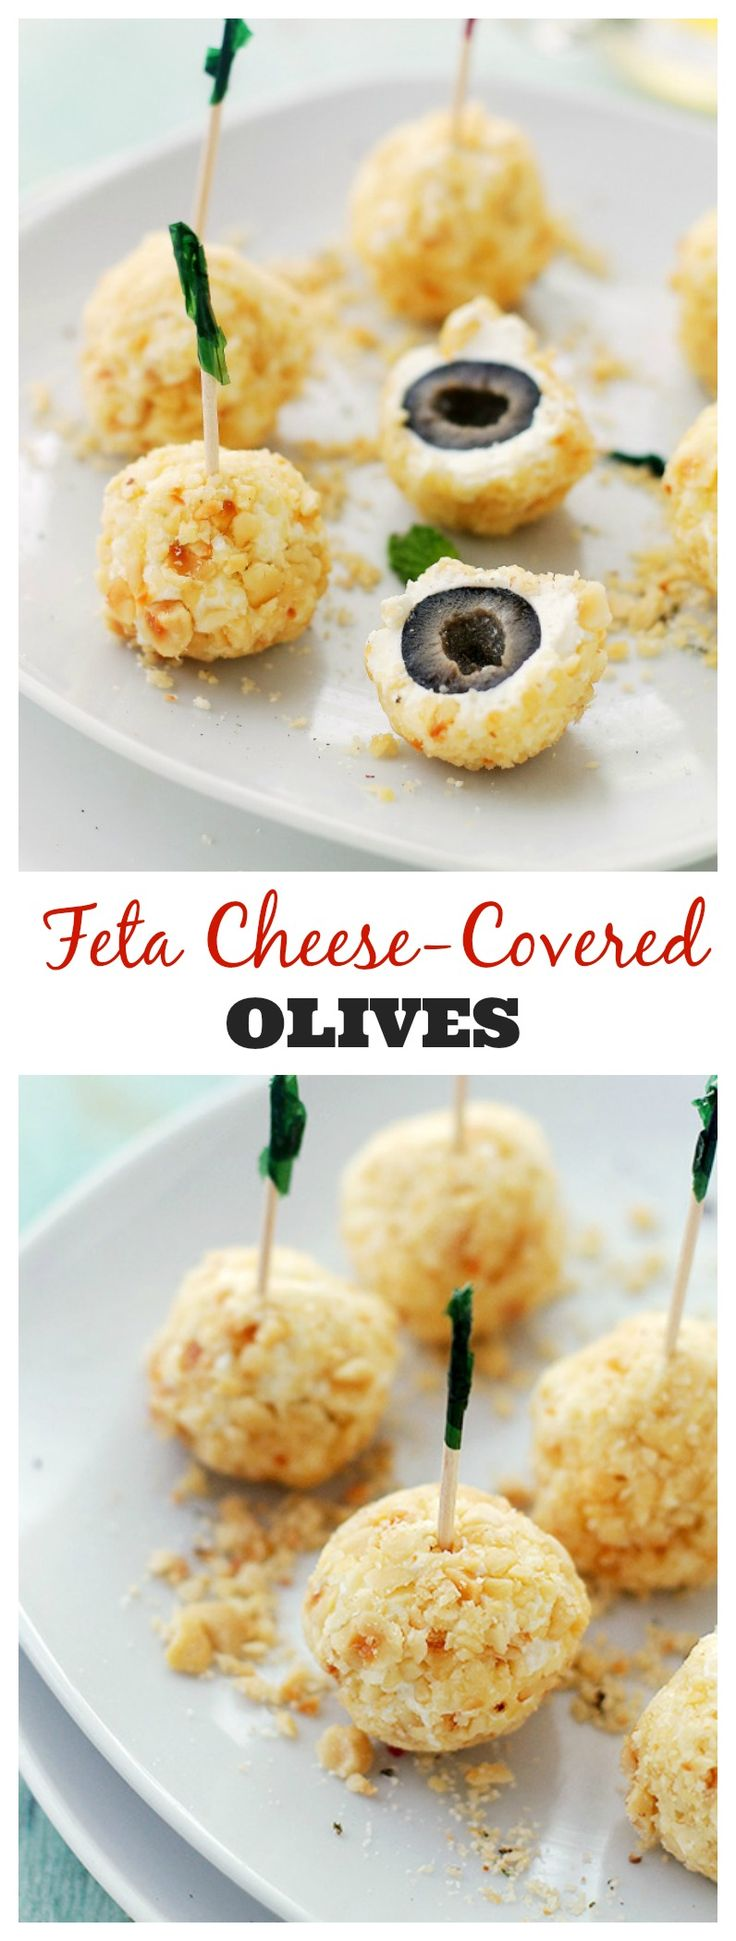 Feta Cheese-Covered Olives | www.diethood.com | A fun and incredibly flavorful appetizer made with olives covered in a feta cheese mixture and rolled in crushed hazelnuts.